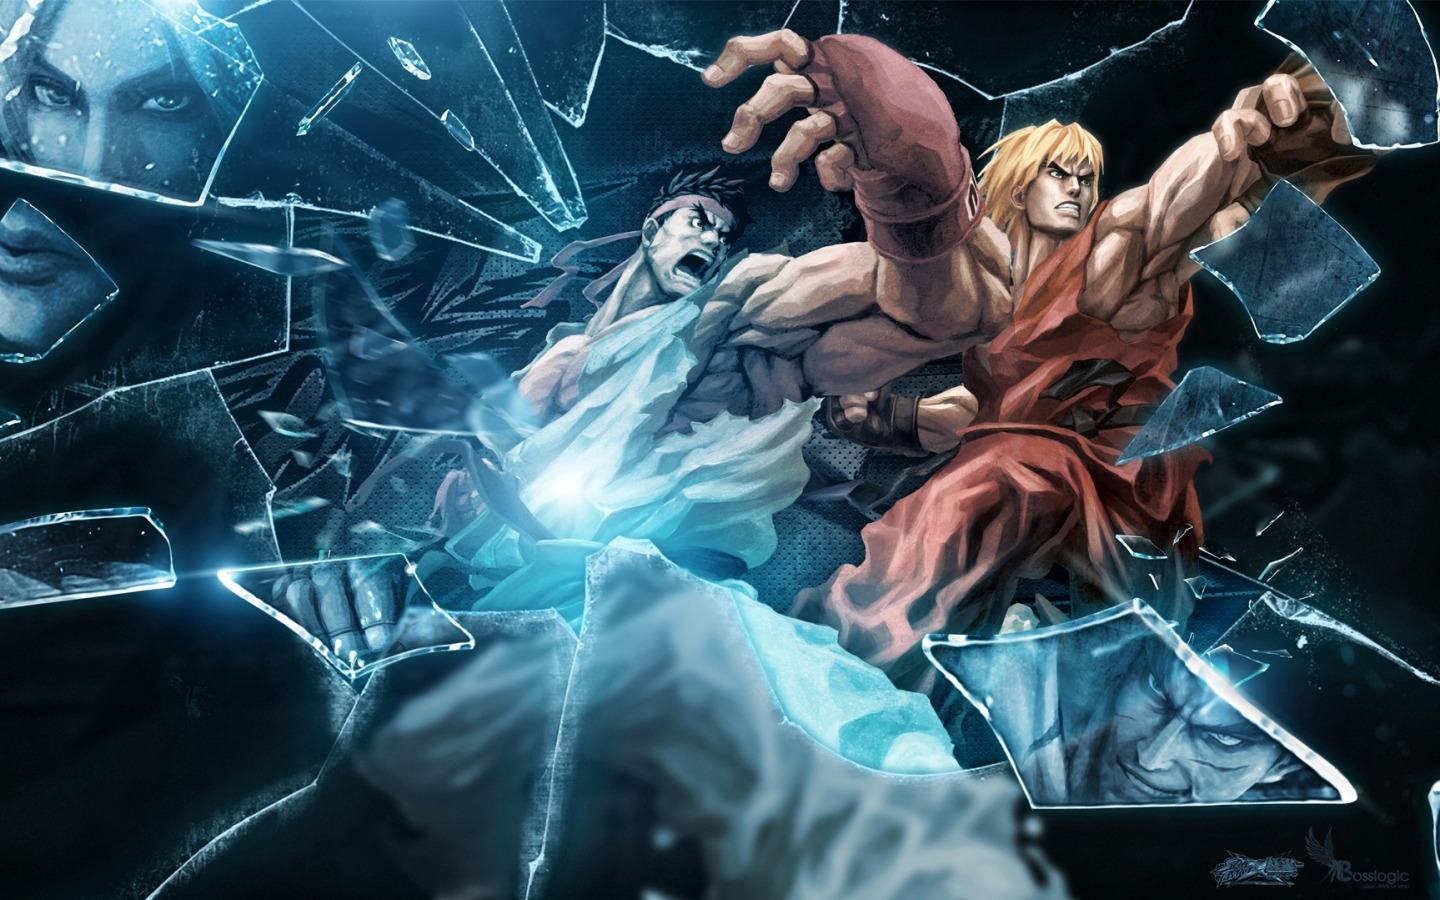 Street Fighter HD & Widescreen Wallpaper 0.33779118535756